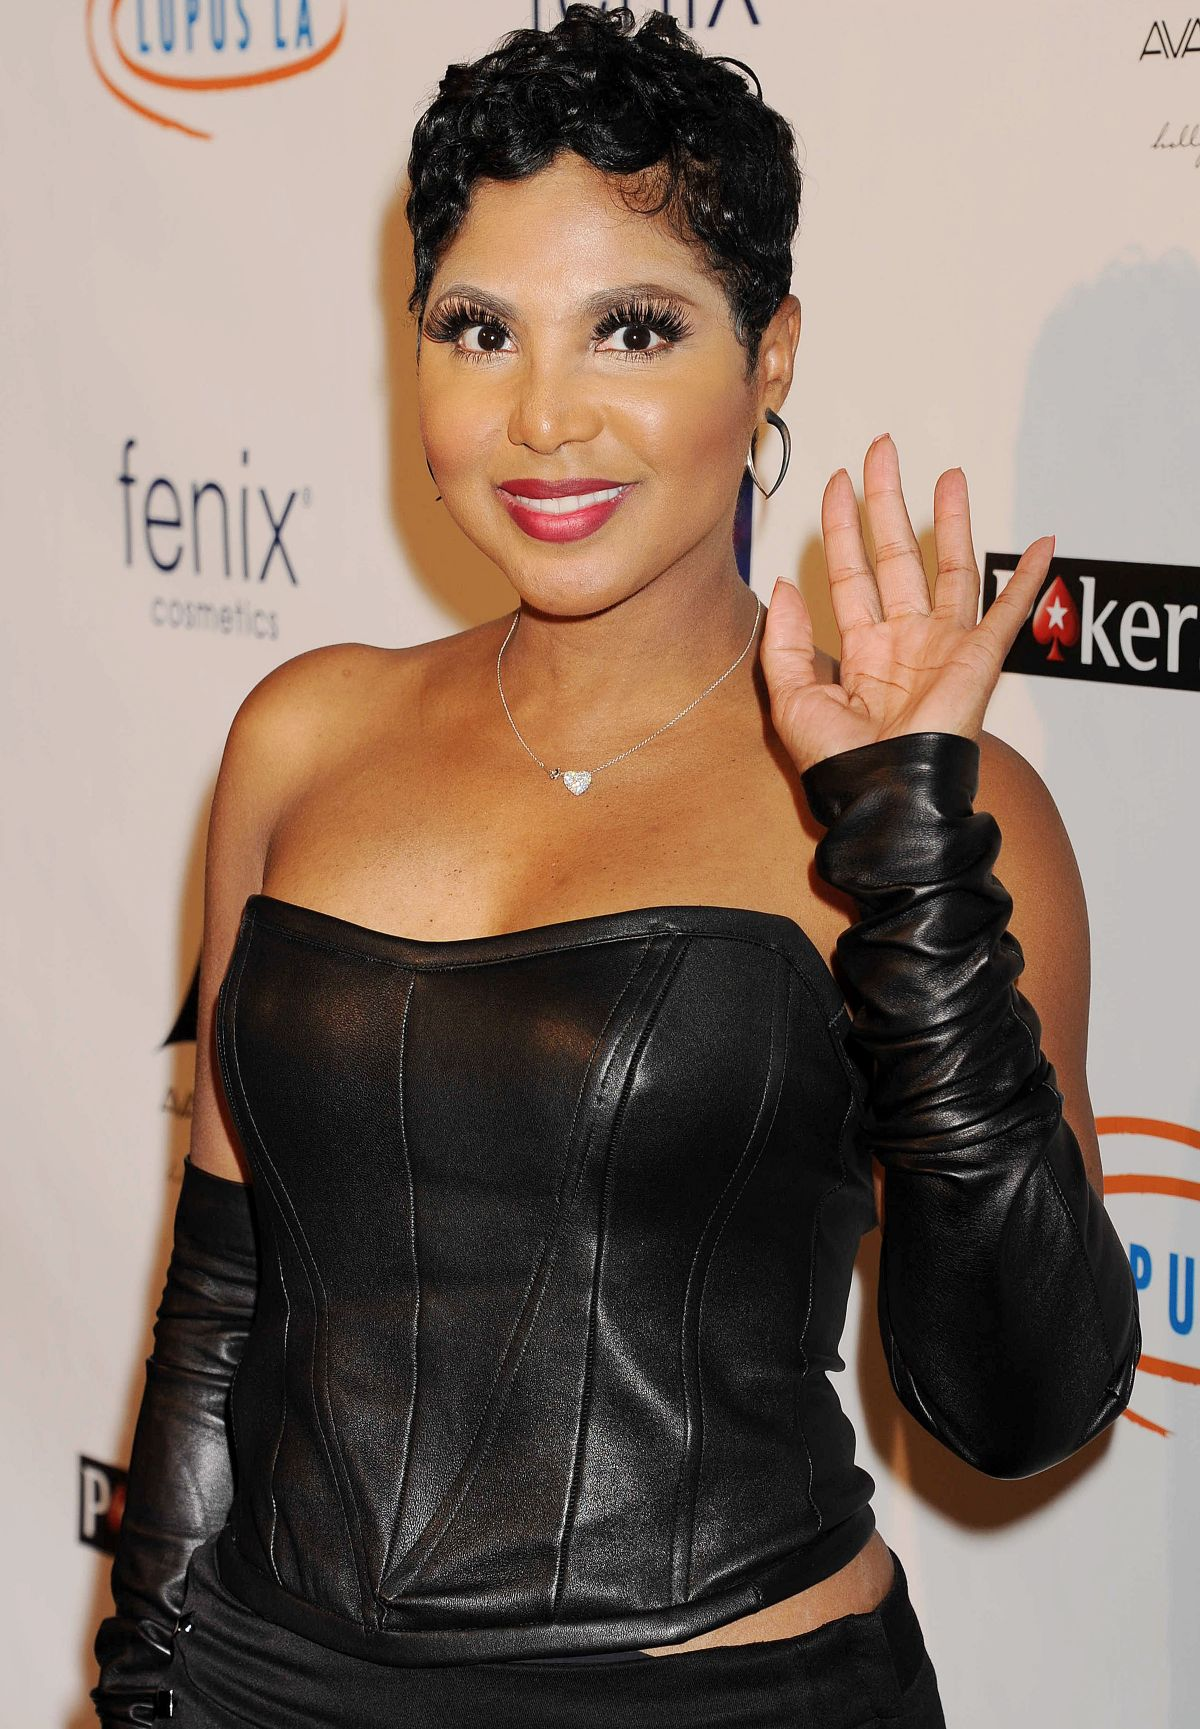 Tips: Toni Braxton, 2017s businessy hair style of the cute hautain  musician